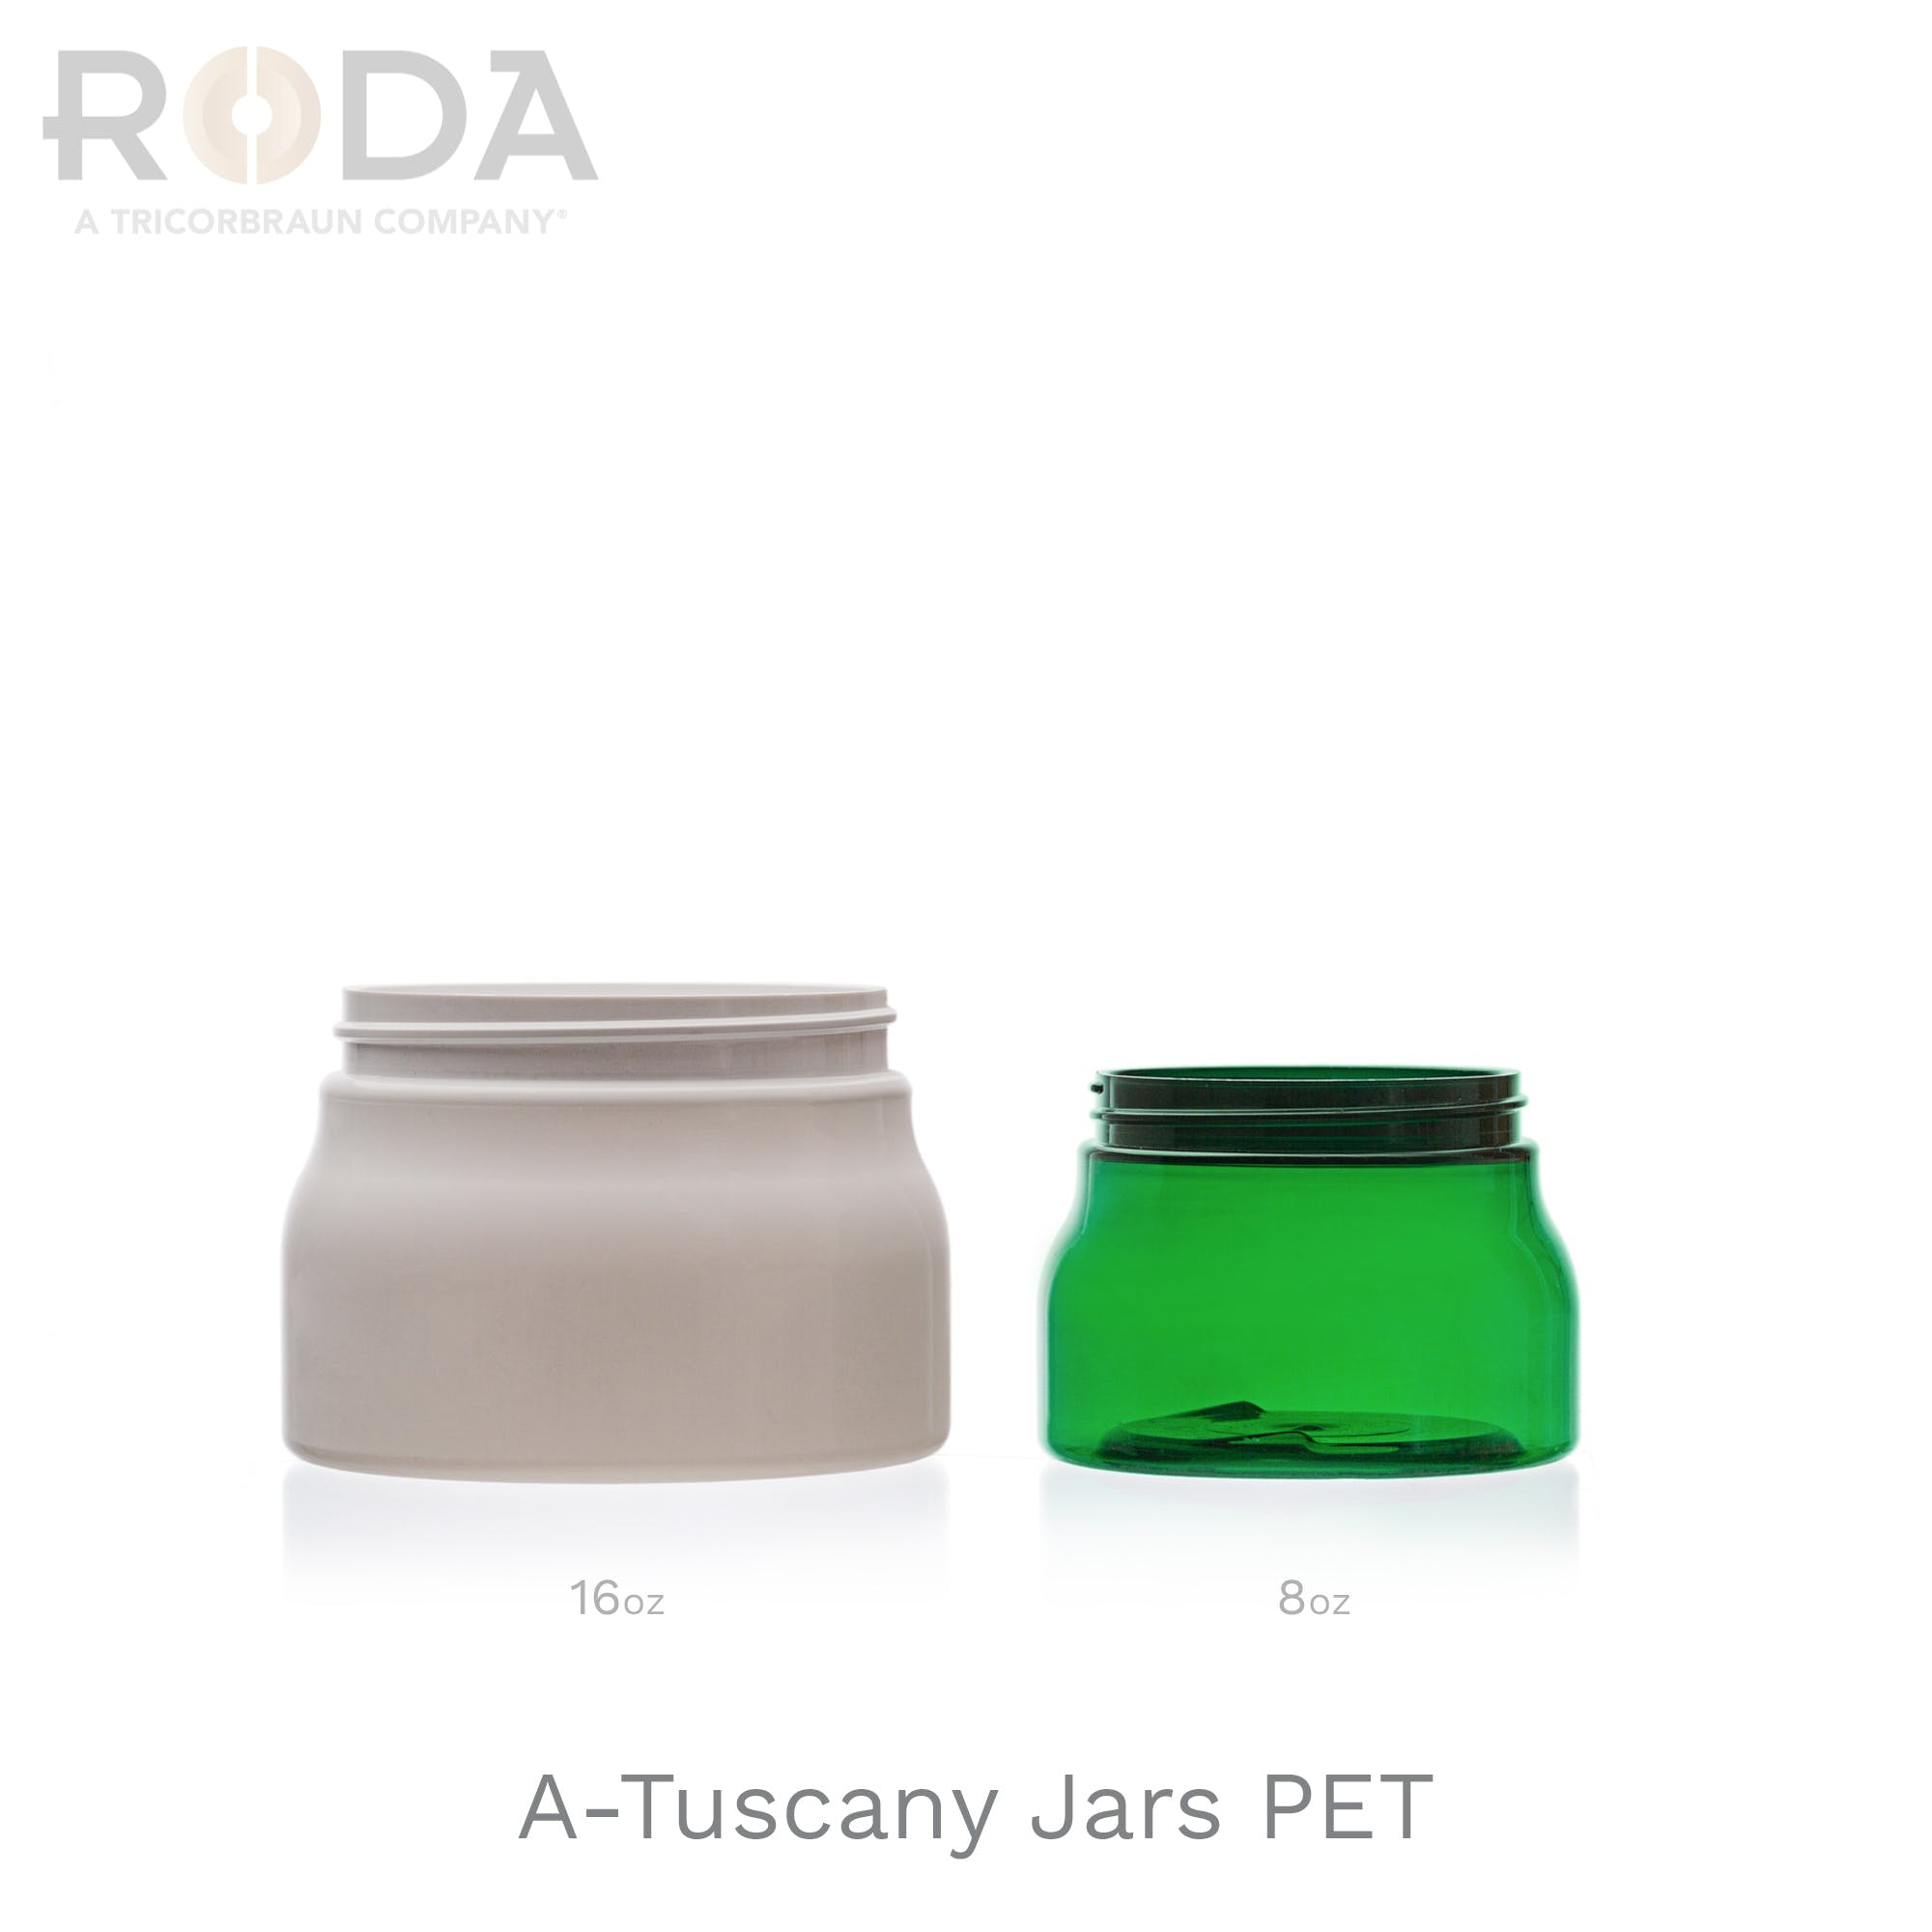 A-Tuscany Jars PET